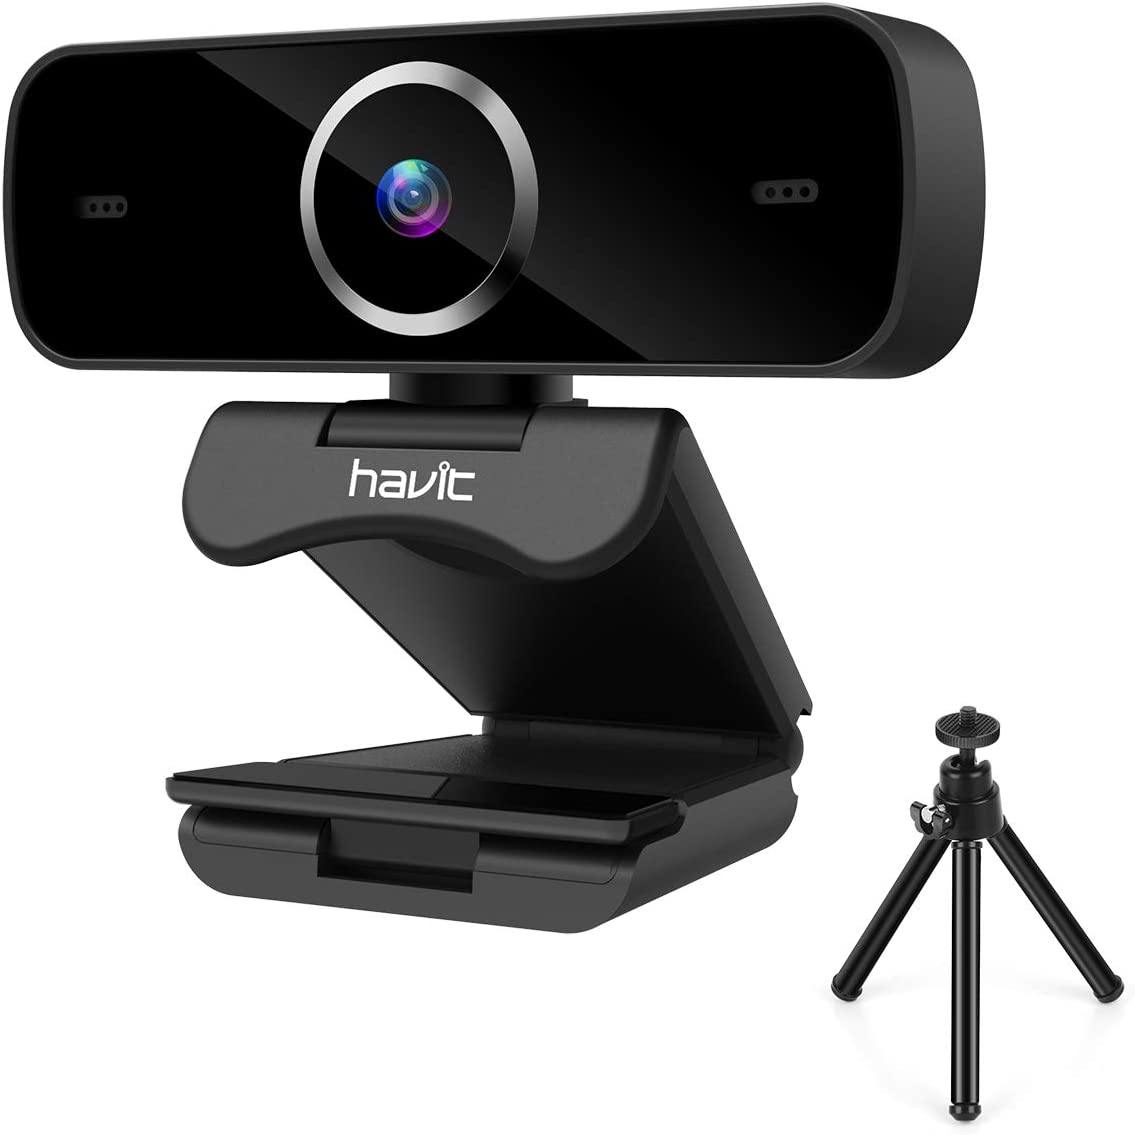 Webcam with Microphone, Havit 1080P Desktop Laptop HD Web Camera with Tripod Auto Focus Noise Reduction,USB Streaming Computer Webcam for PC, Video Calling, Recording, Conference, Gaming